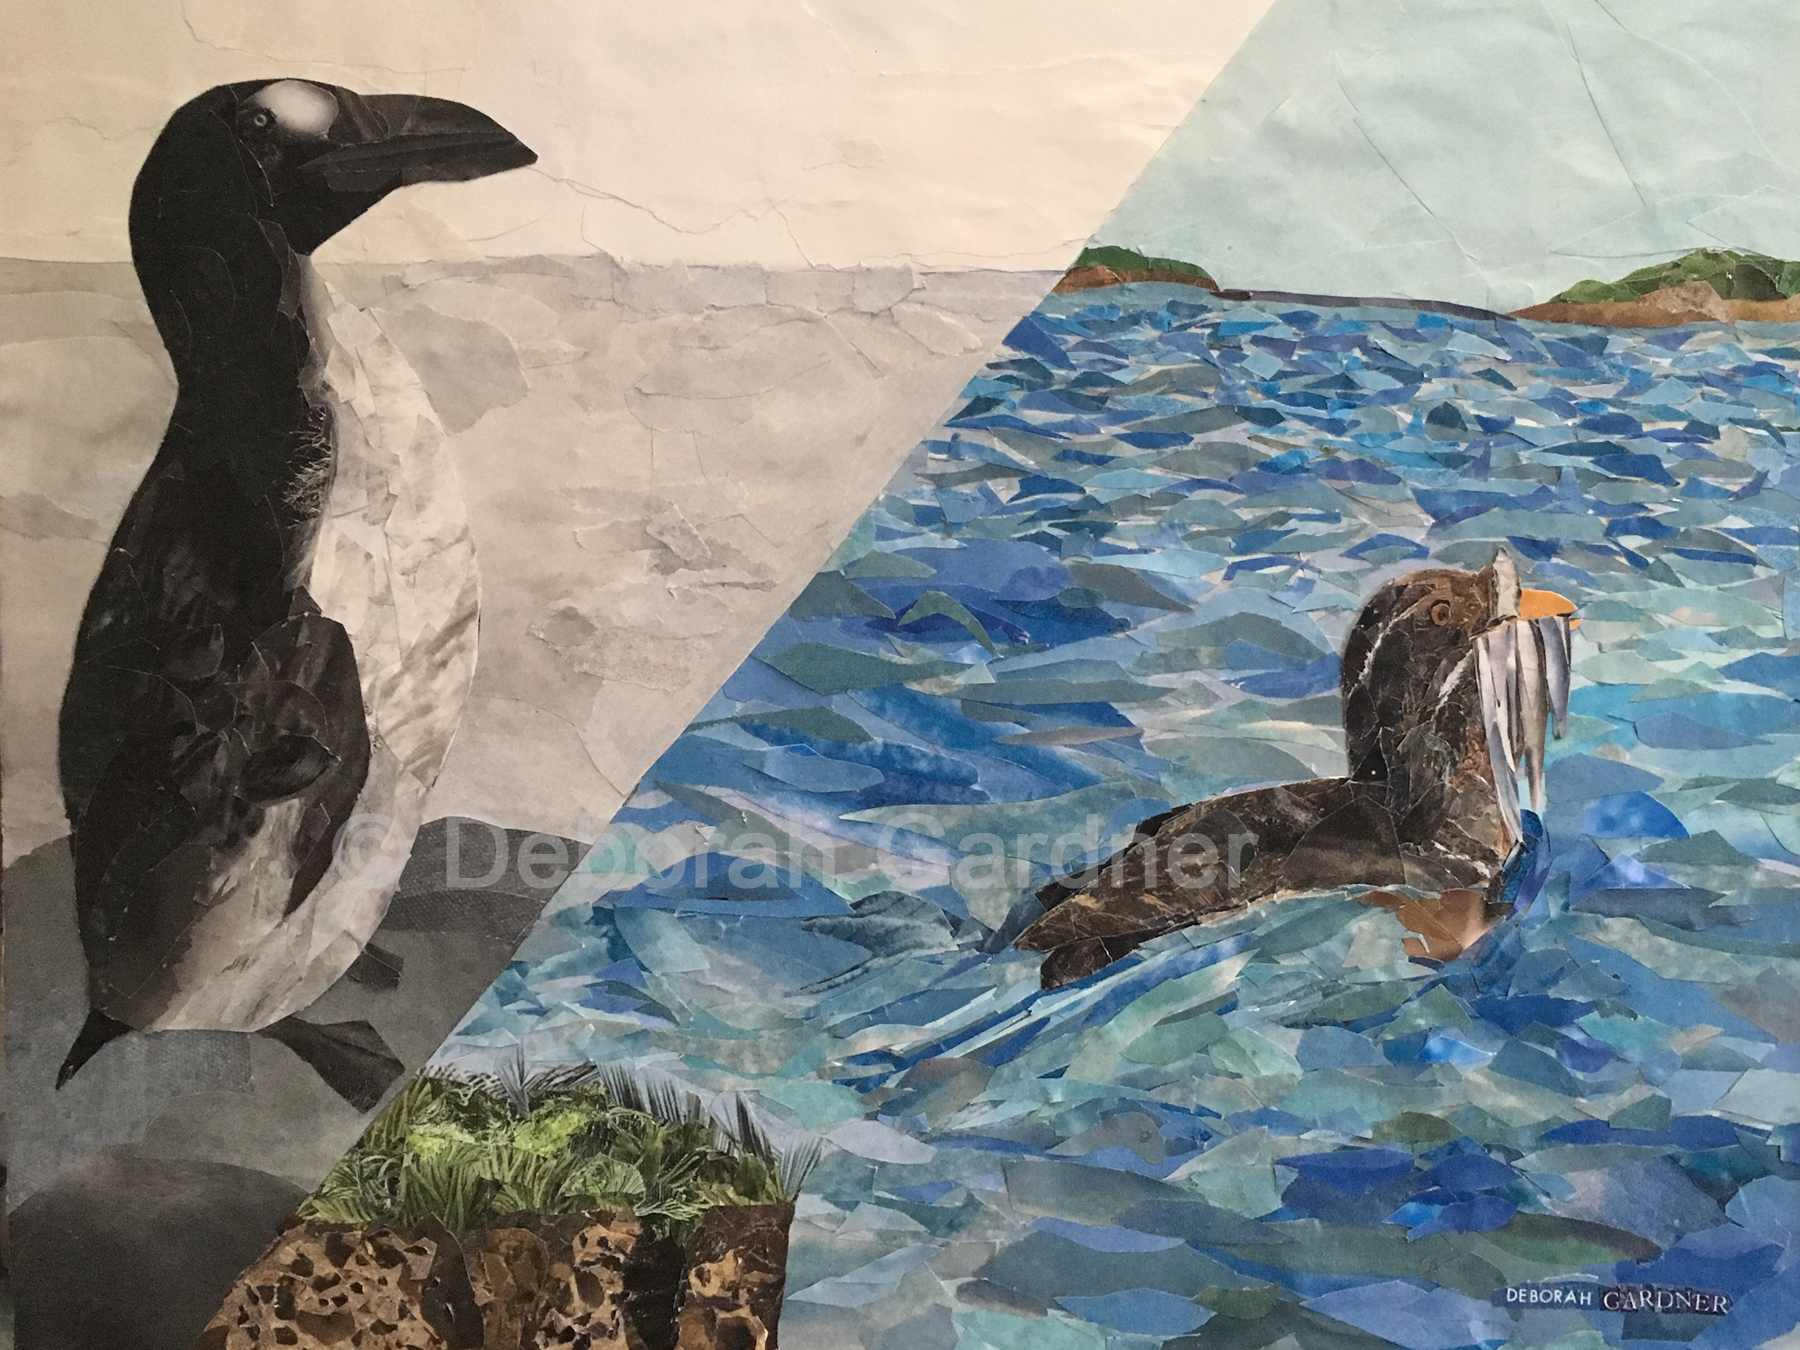 Image of a collage representing a black-and-white Great Auk on the left, and a color Rhinoceros Auklet on the right, divided by a diagonal line